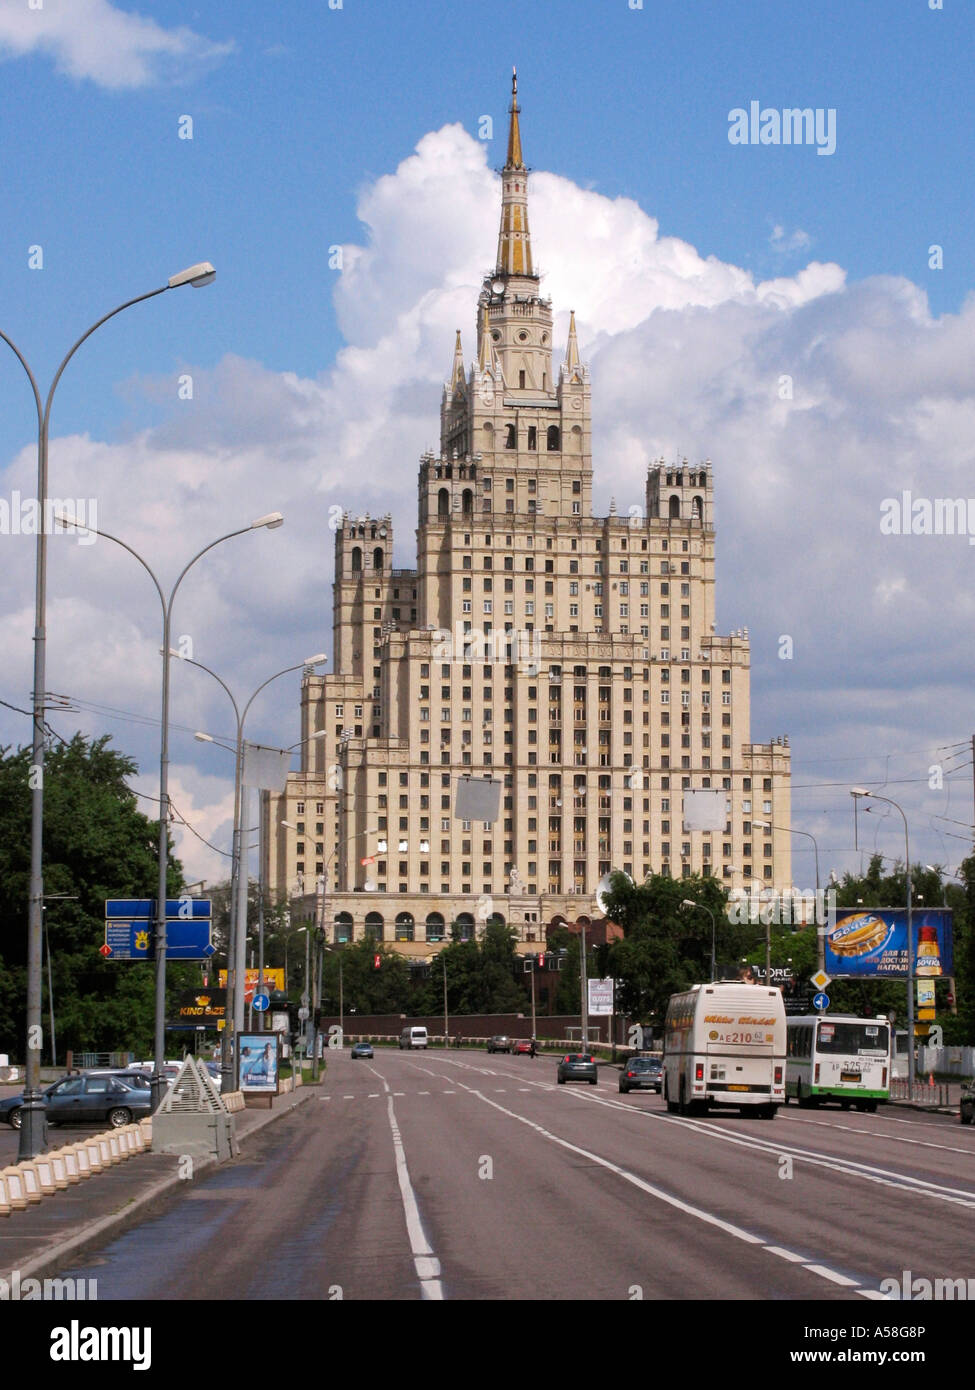 Stock Photo of a Stalinist Skyscraper - Stock Image